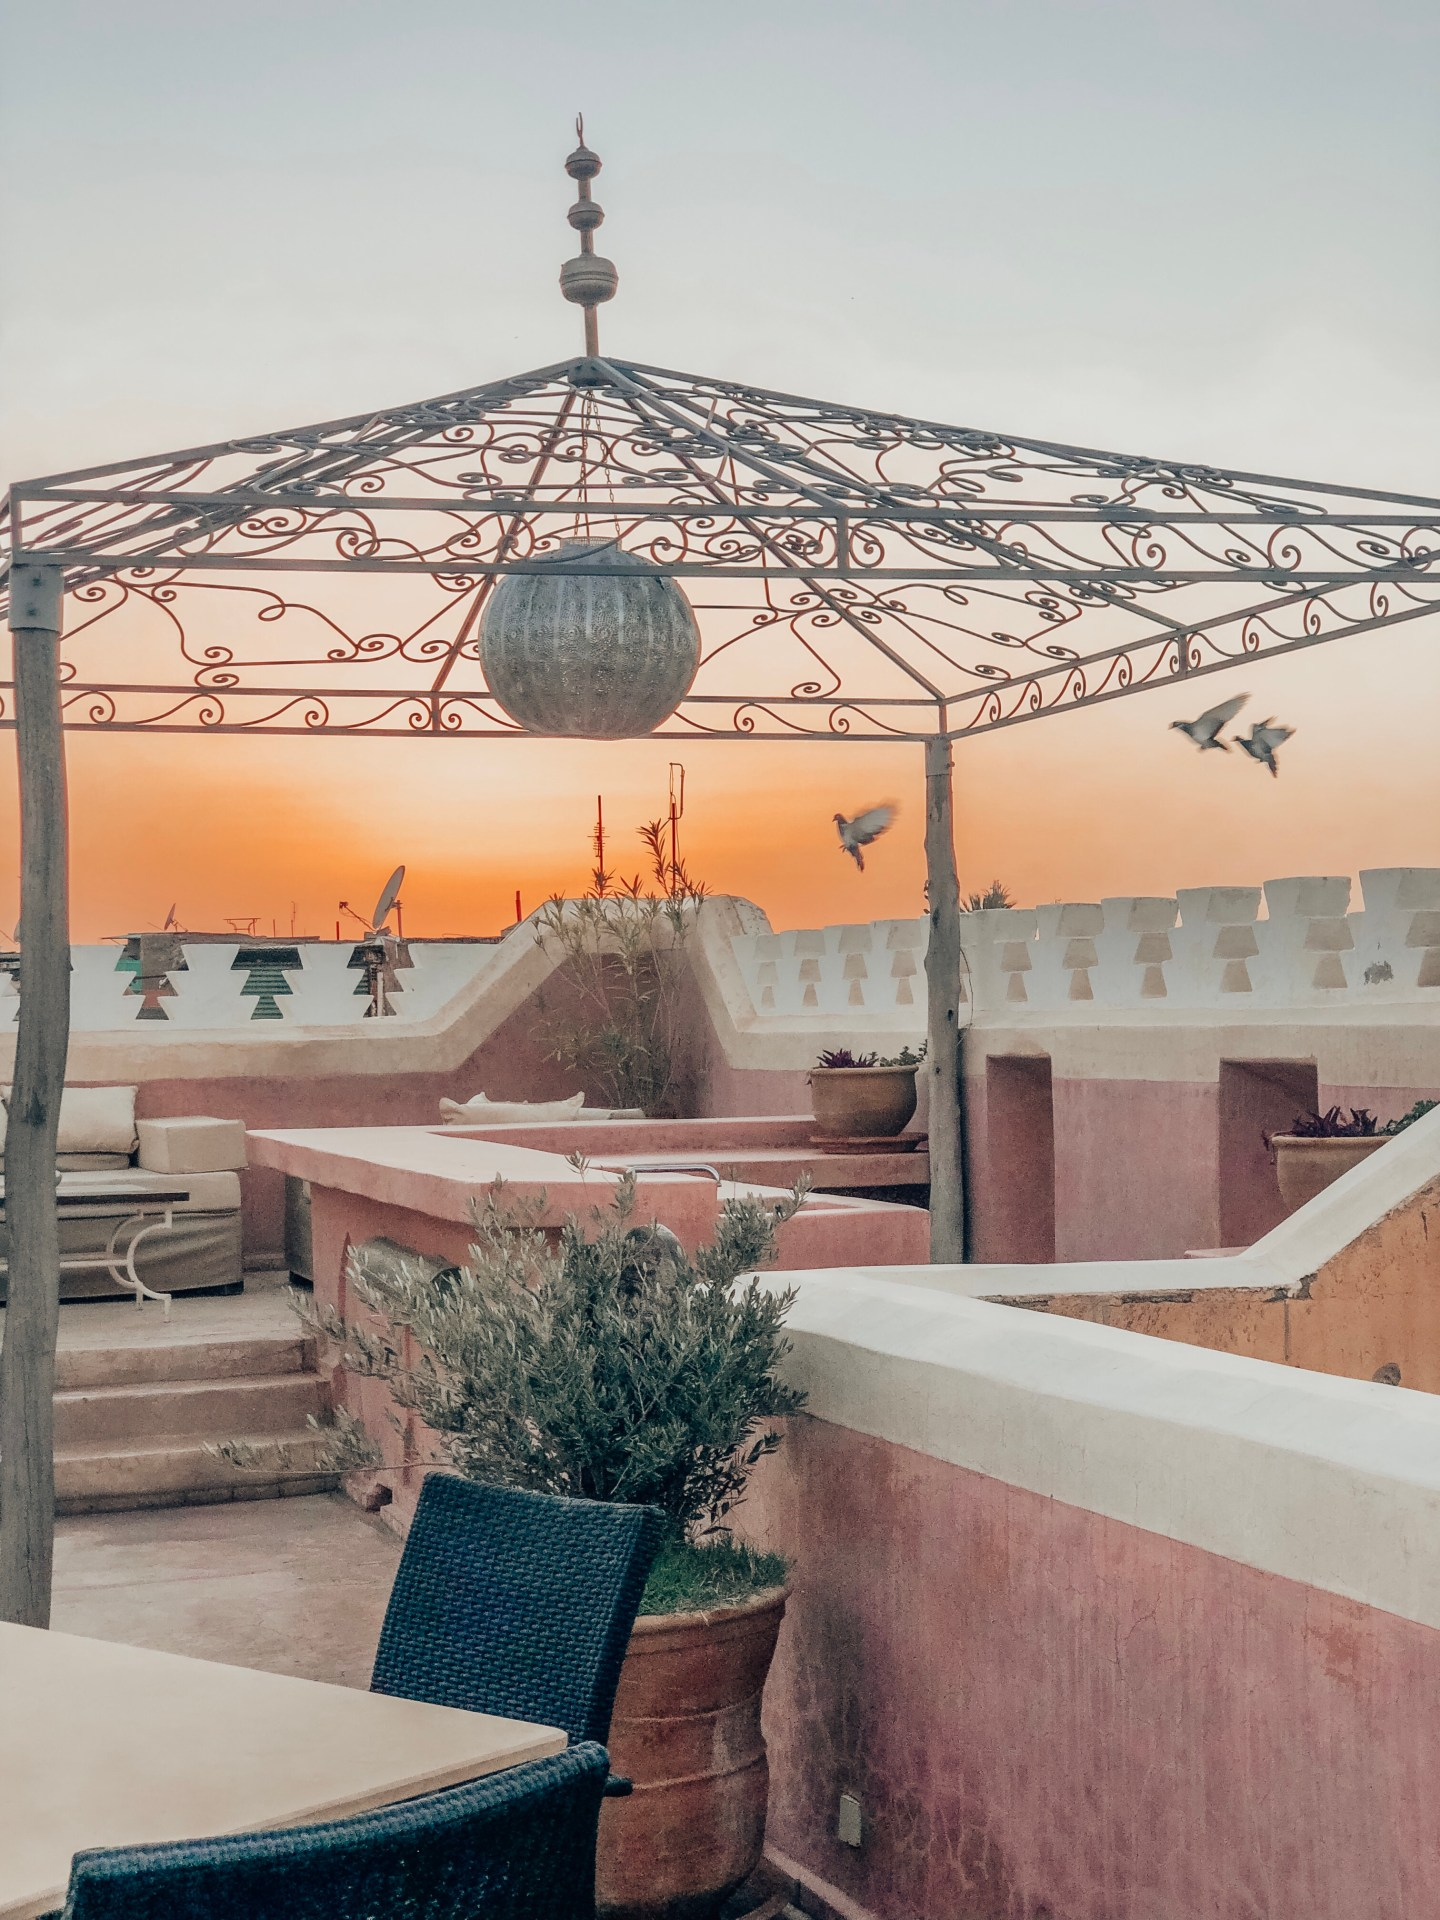 Sunset on the rooftop—Marrakech, Morocco